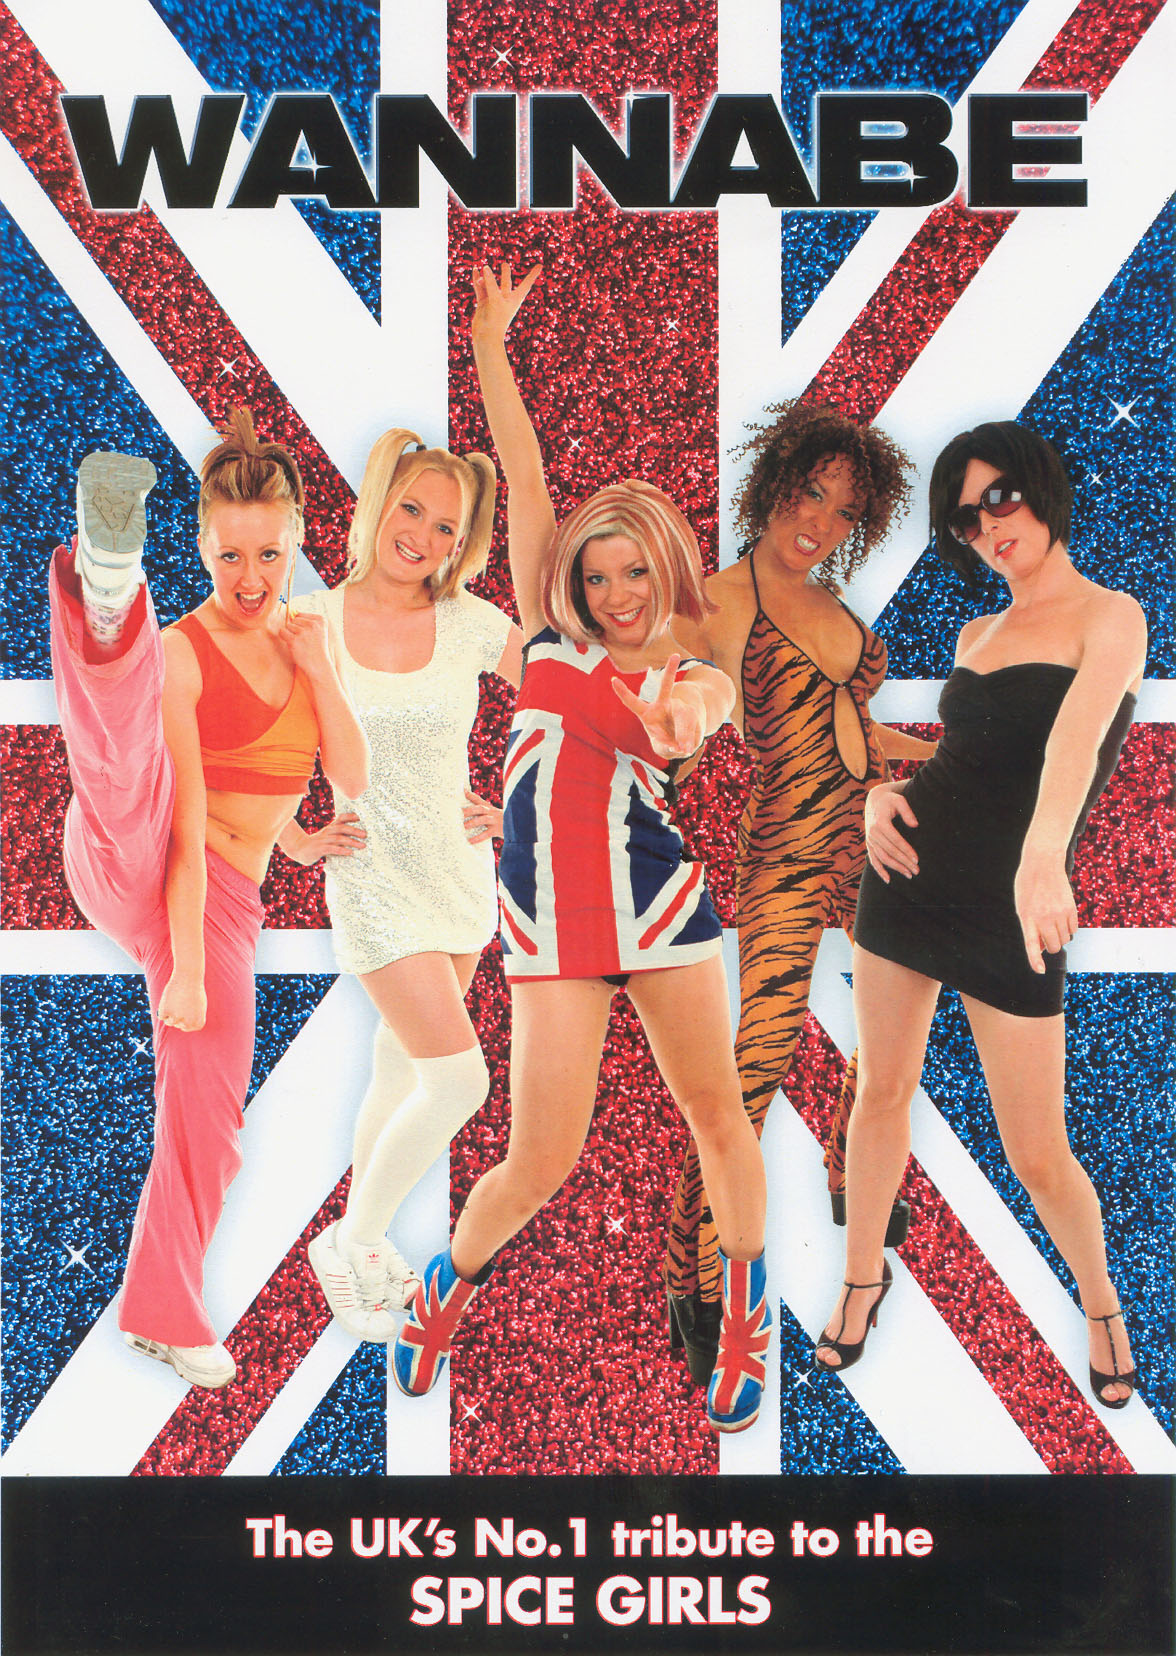 Spice-girls-wannabe